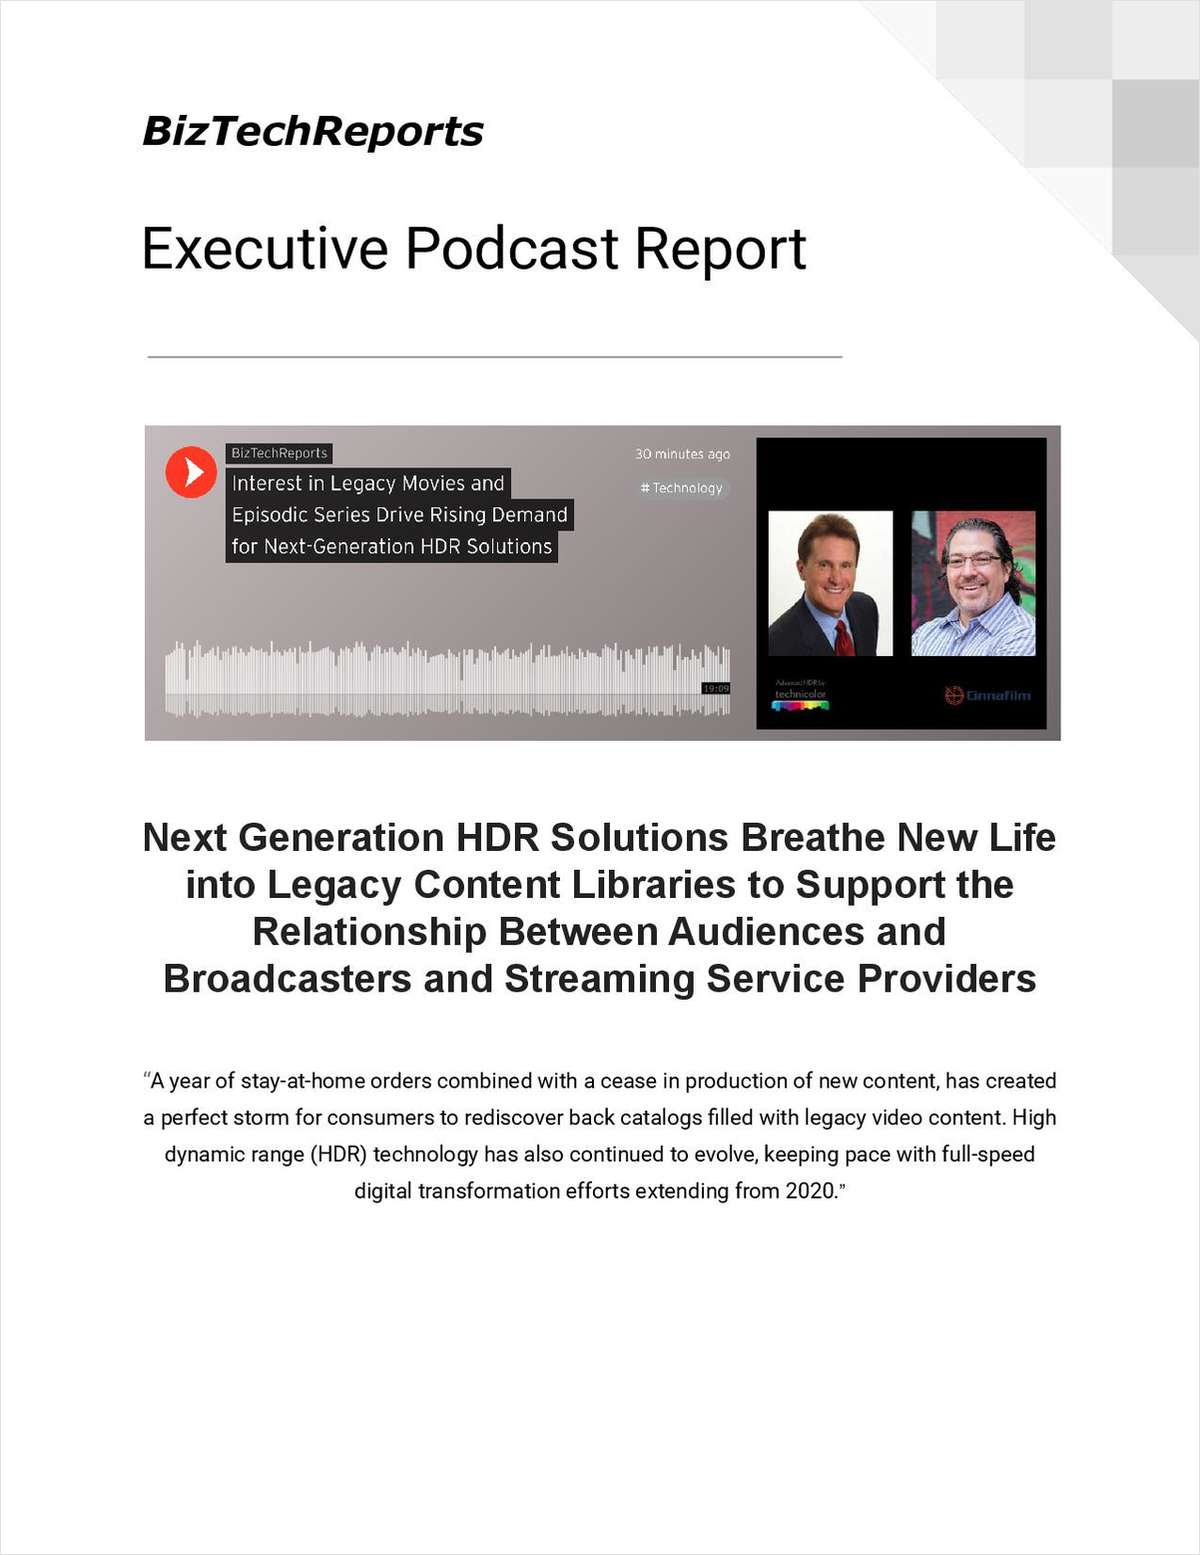 Next Generation HDR Solutions Breathe New Life into Legacy Content Libraries